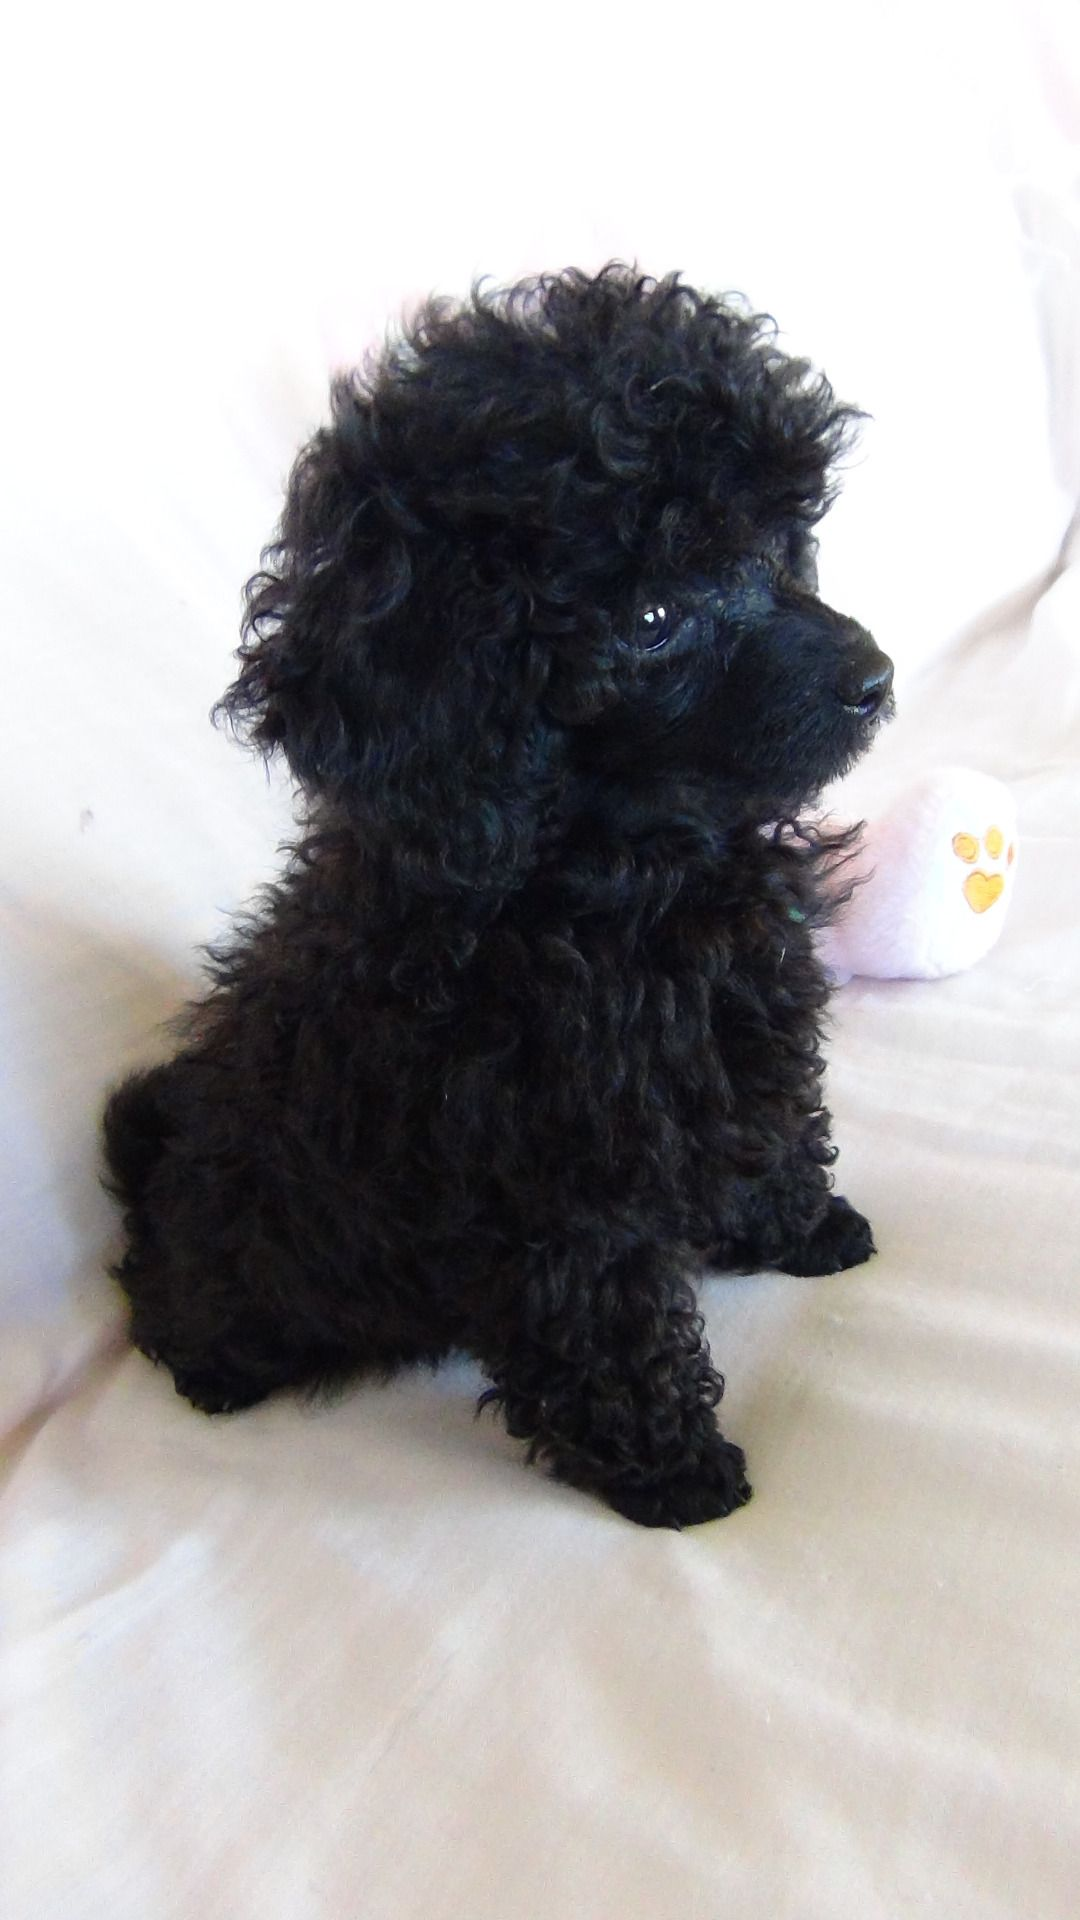 The Poodle Patch Poodle Puppy Love Let S Call Her Ella